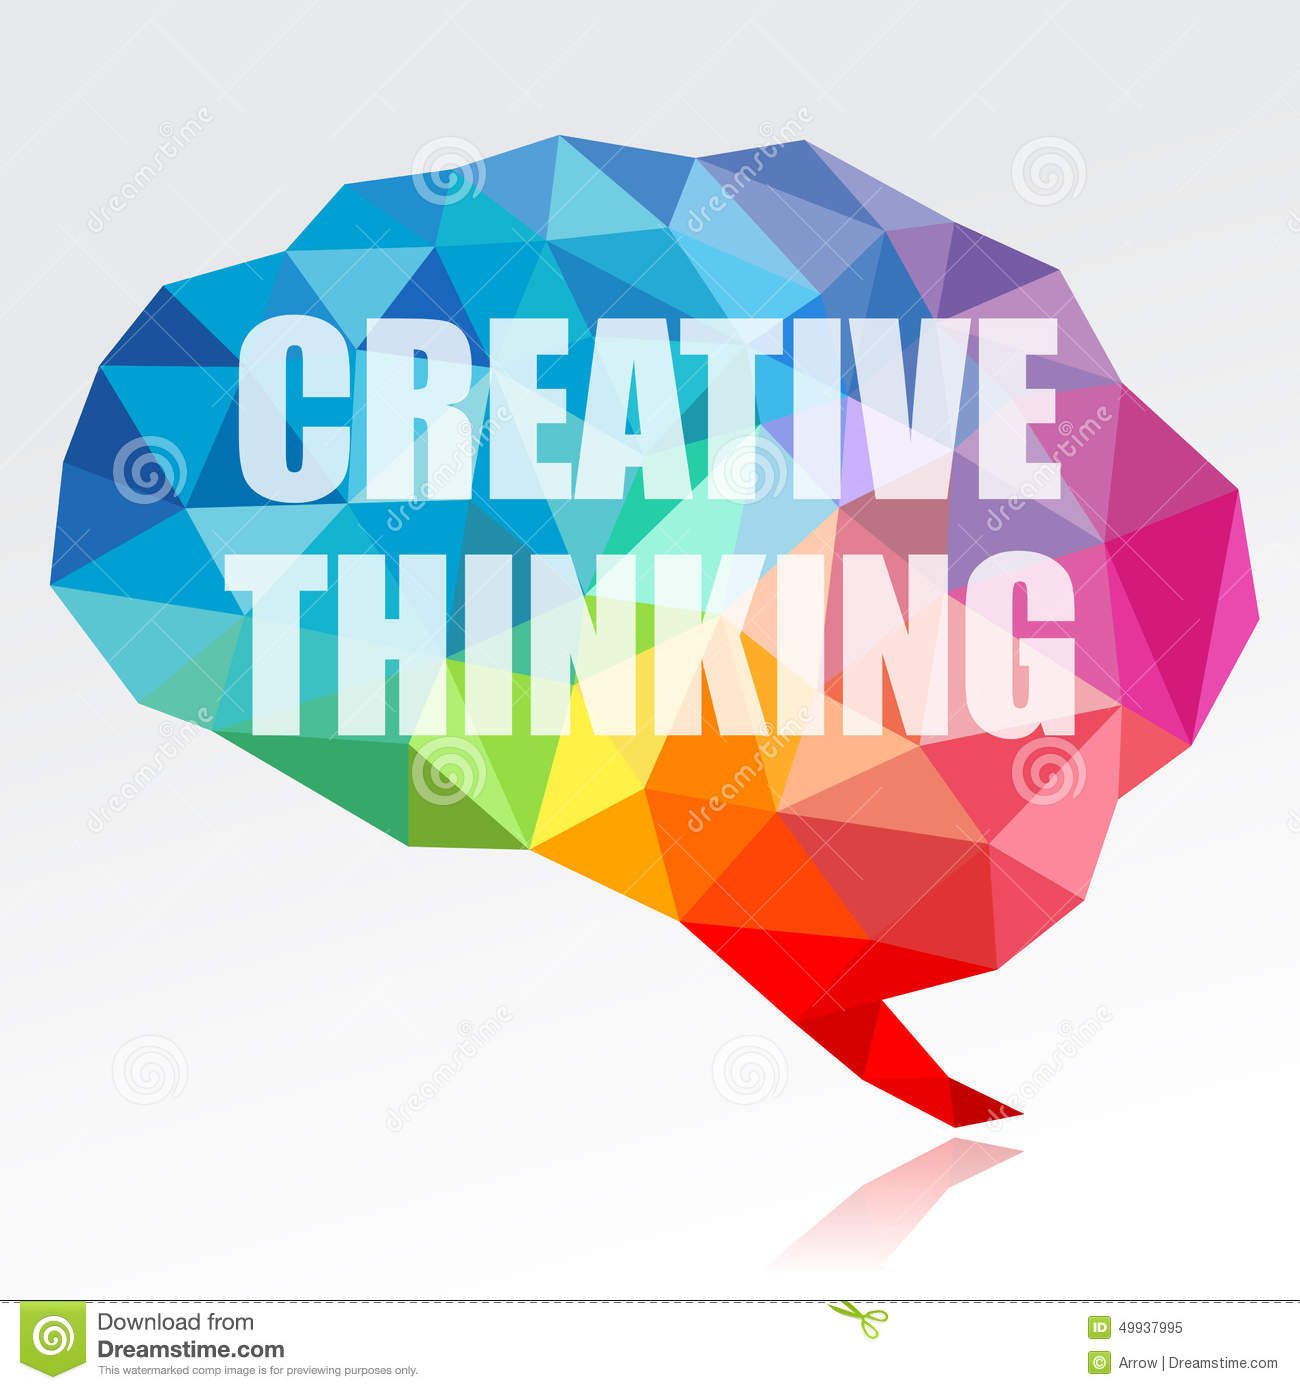 Creative thinking clipart 2 » Clipart Station.